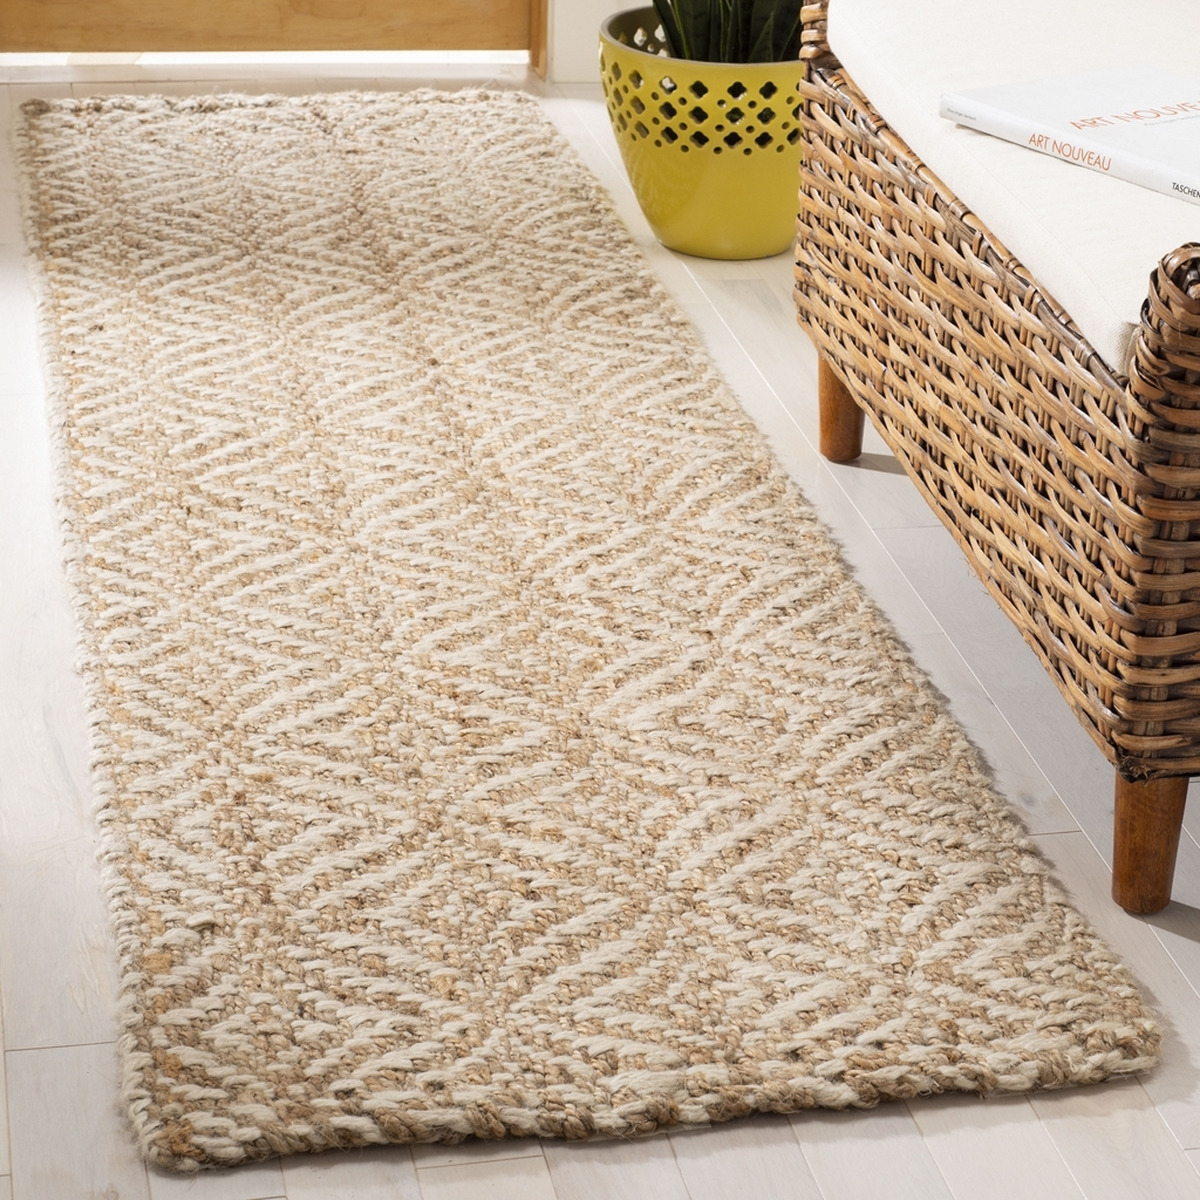 Rug Nf185a Natural Fiber Area Rugs By